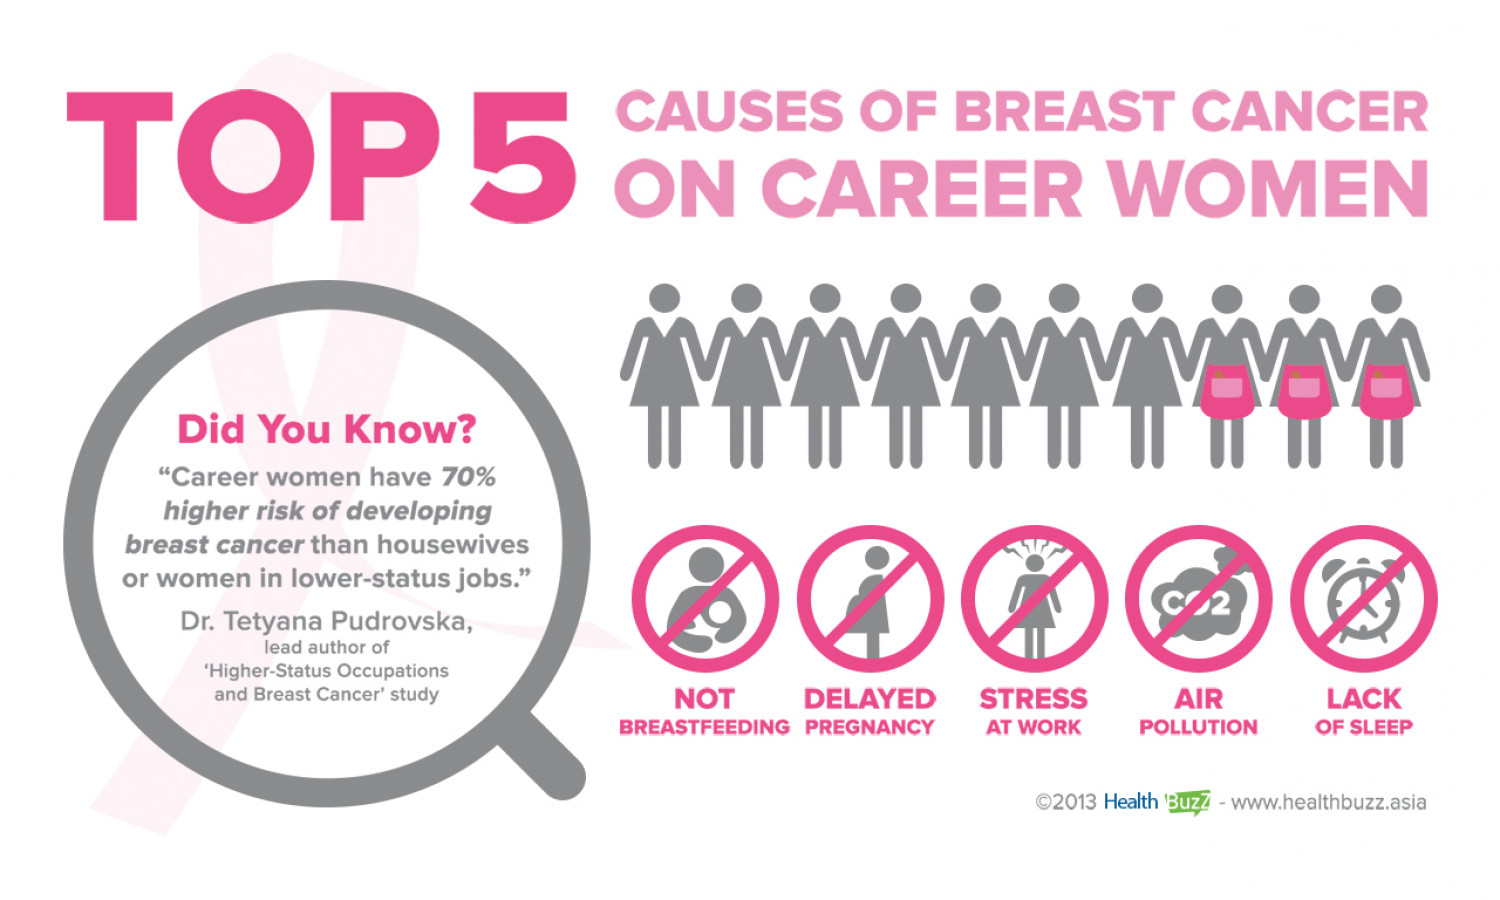 Bigger Breasts, Lack of Exercise Tied to Breast Cancer Mortality